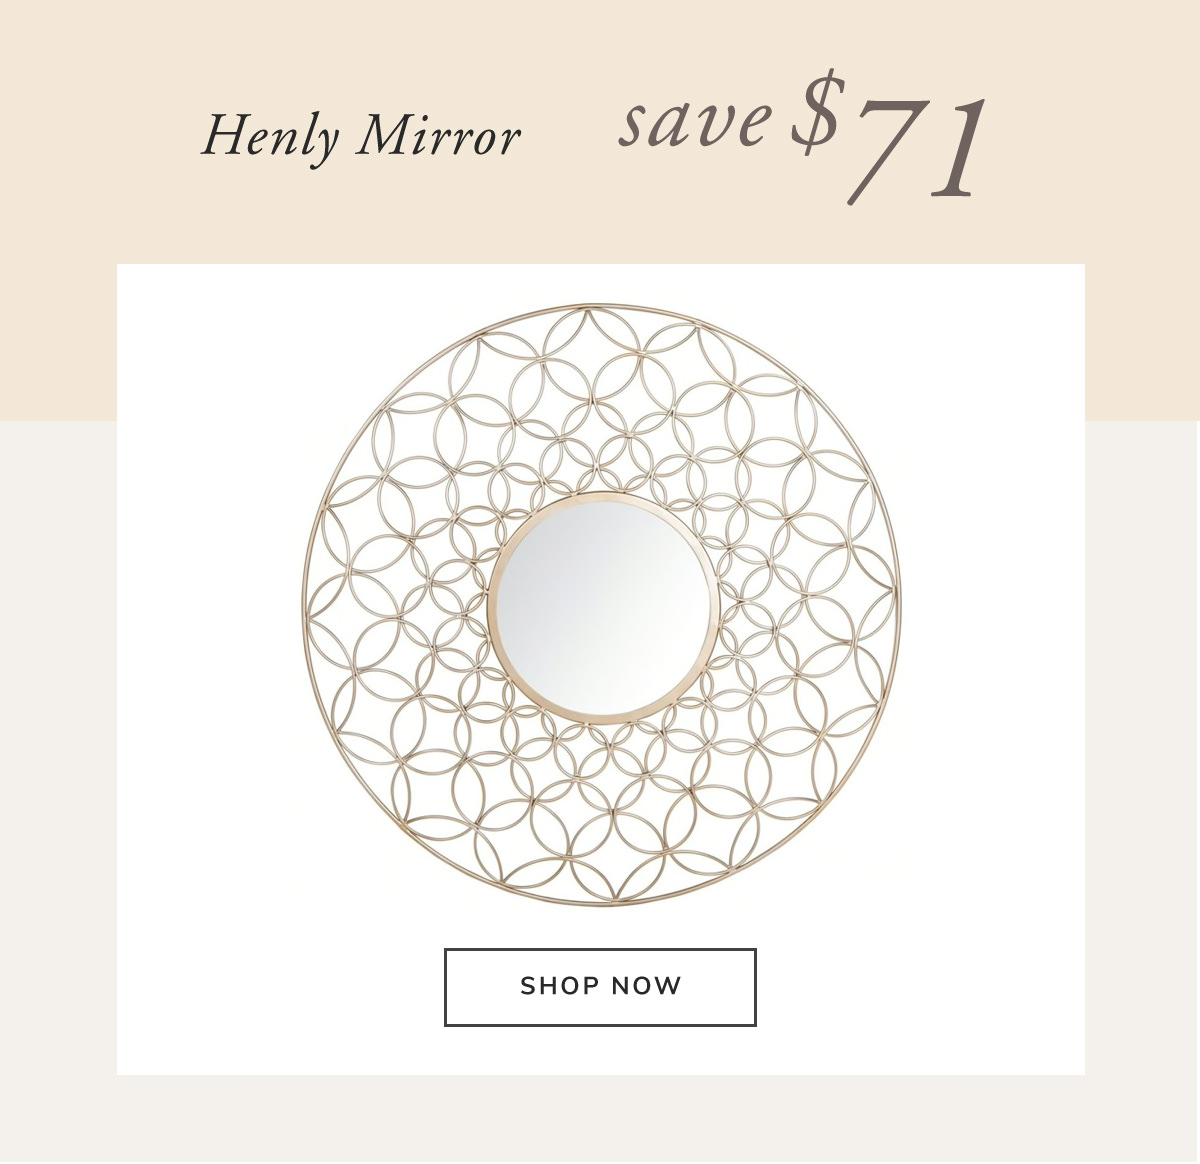 Henly Mirror. Save $71 | SHOP NOW